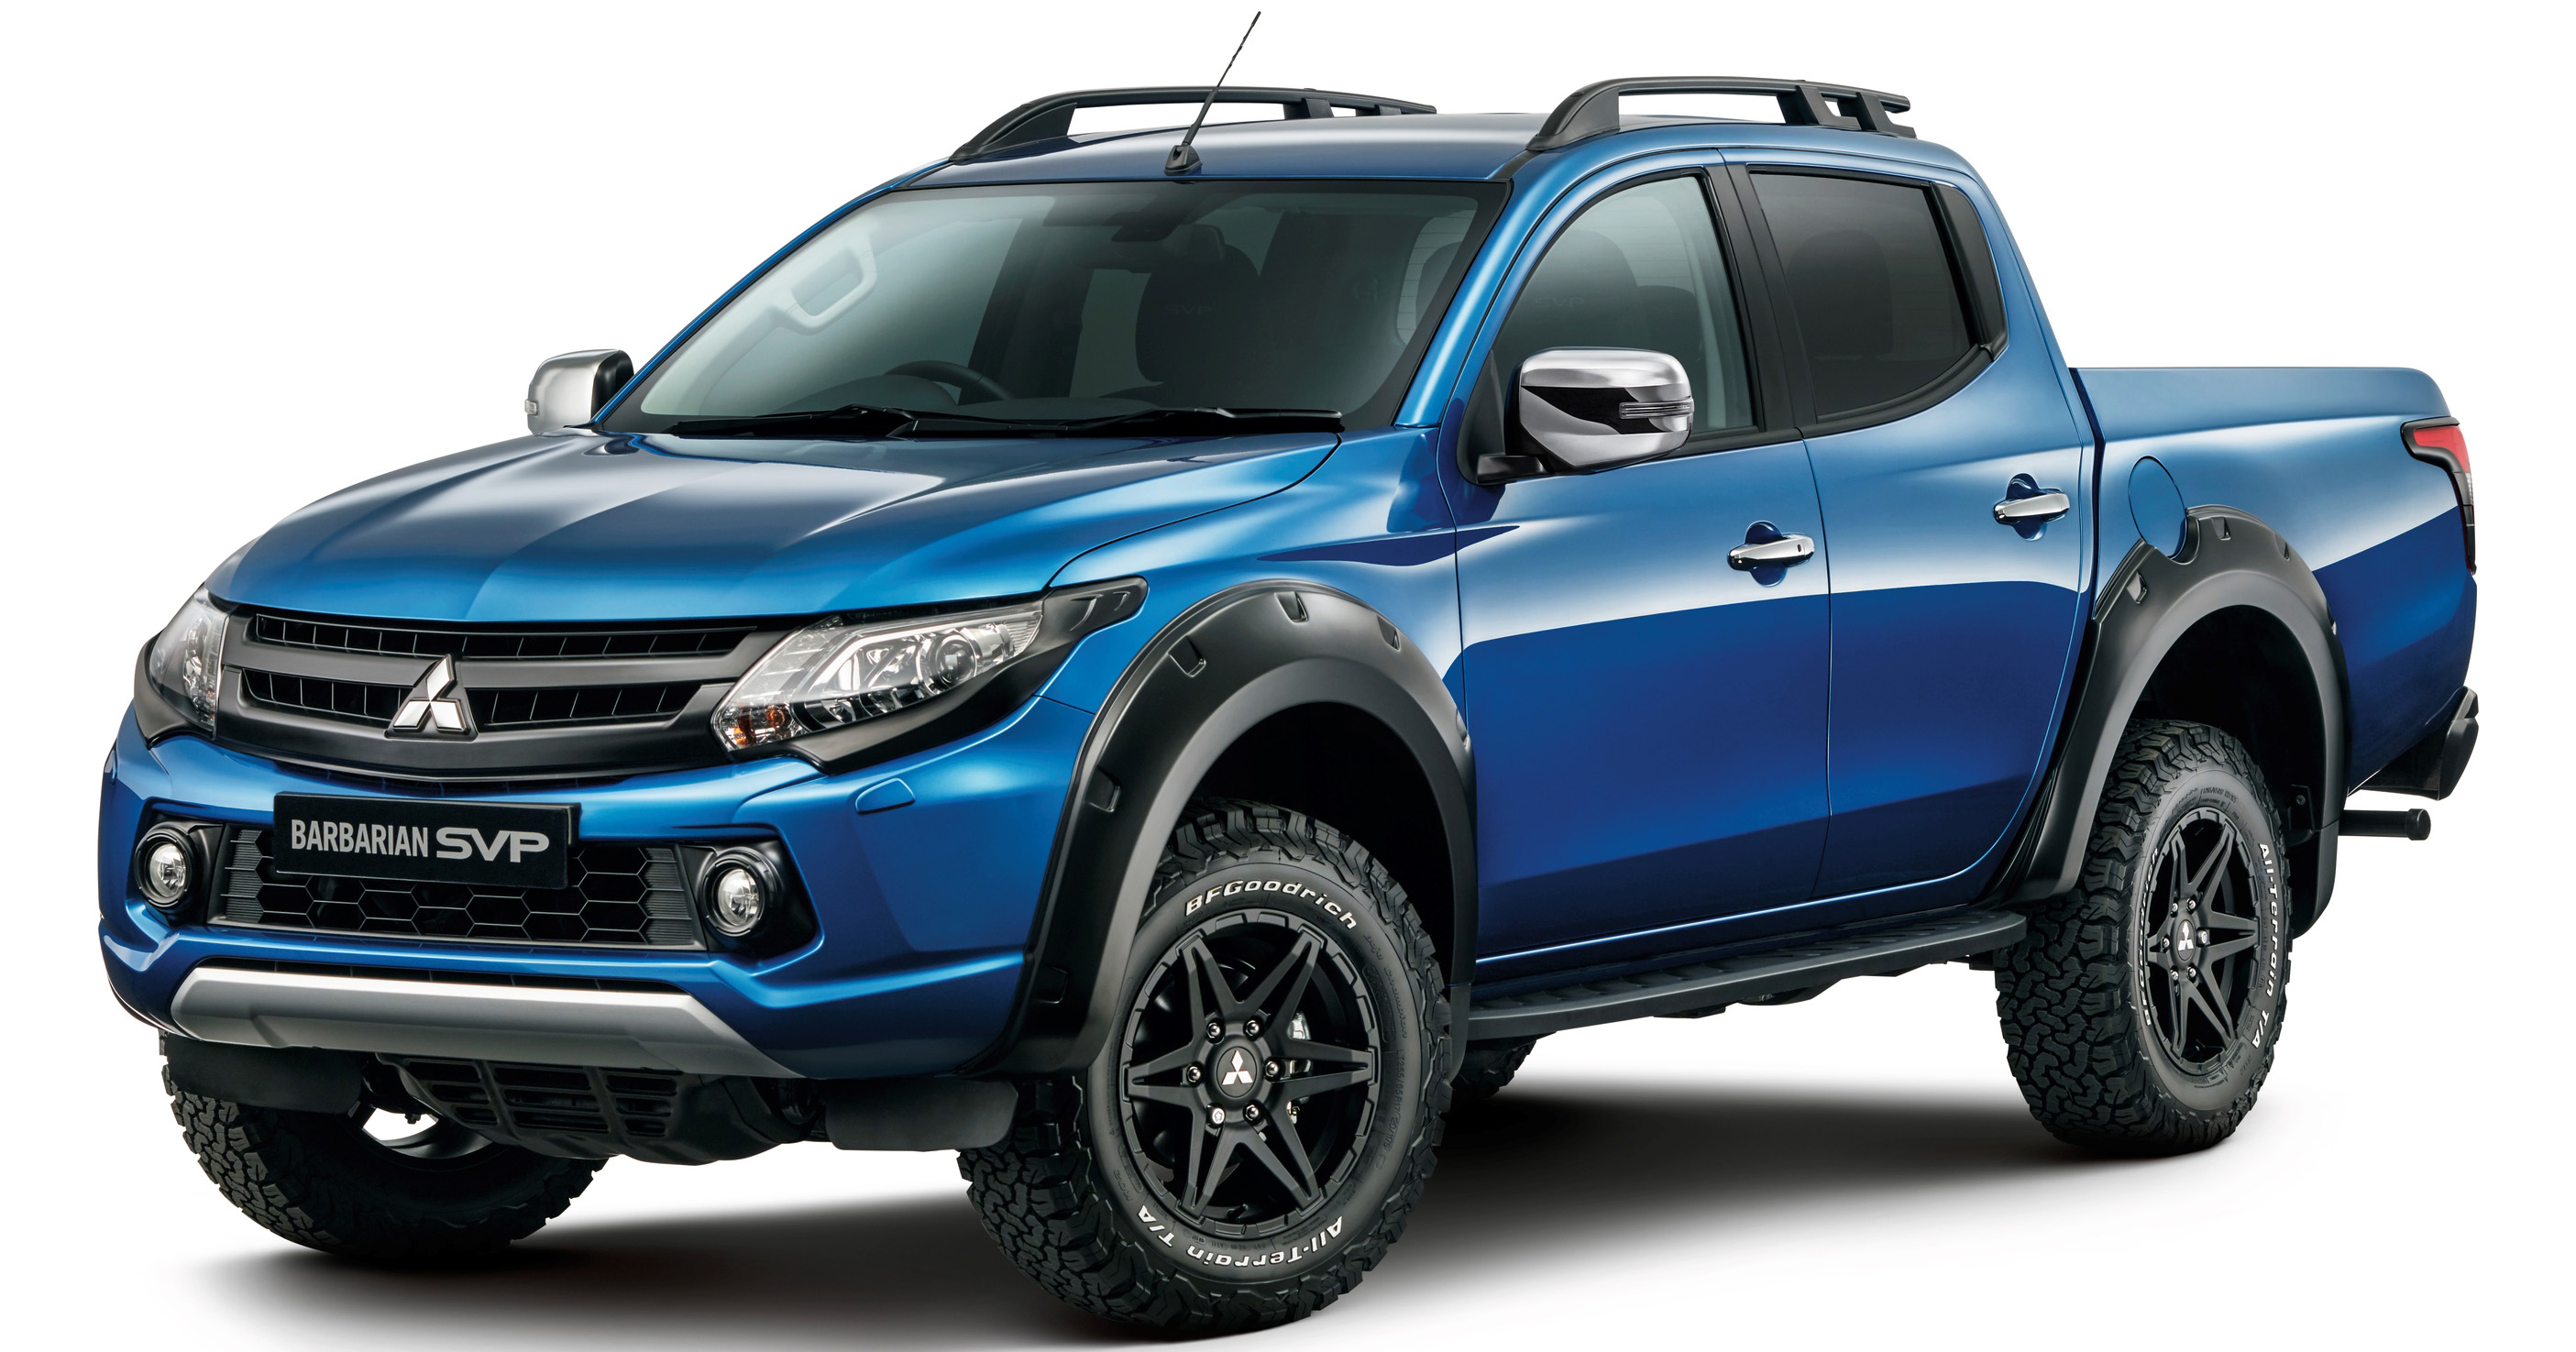 mitsubishi triton barbarian svp limited to 250 units. Black Bedroom Furniture Sets. Home Design Ideas